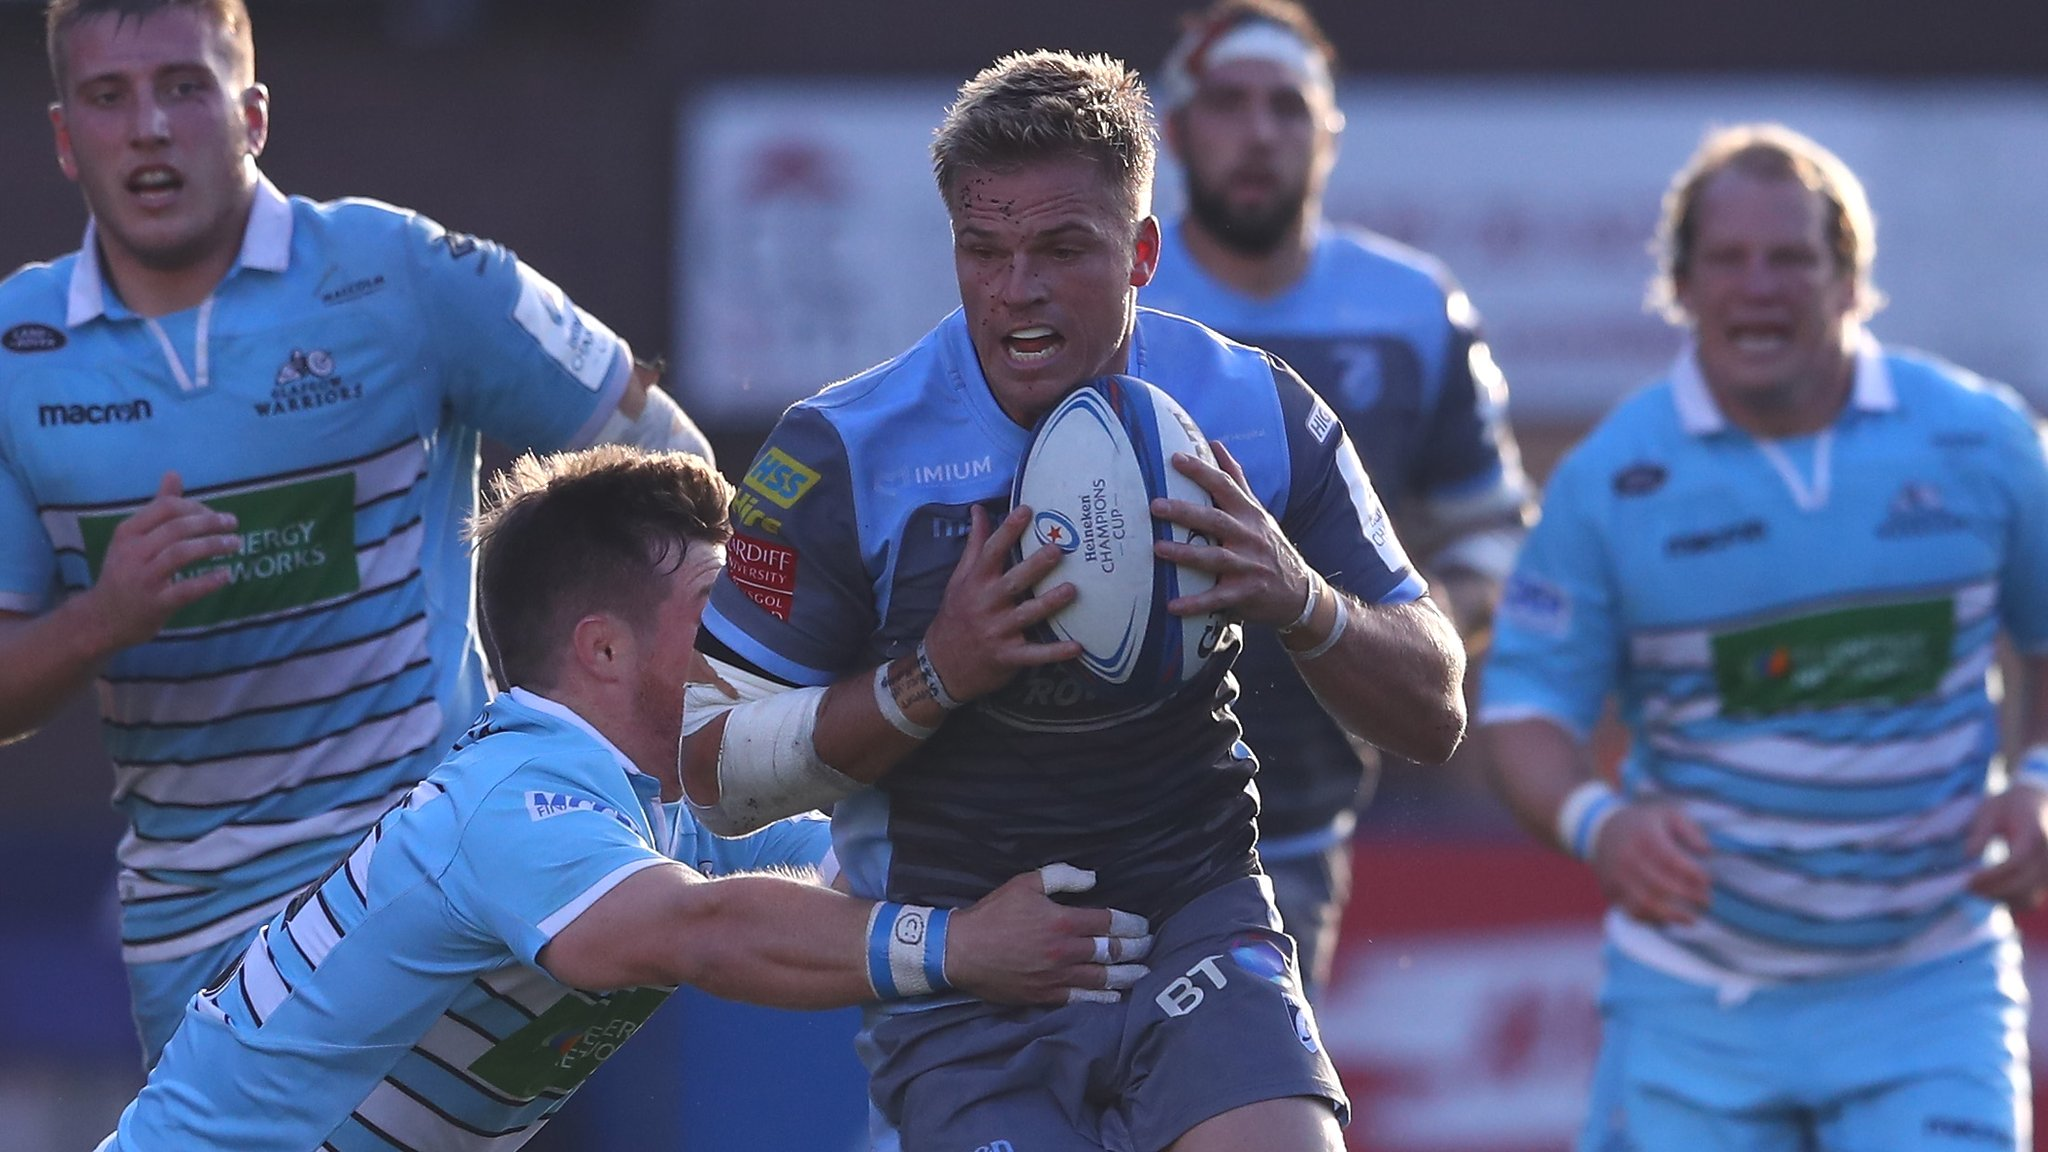 Cardiff Blues v Glasgow Warriors kit clash: Champions Cup organisers to apologise